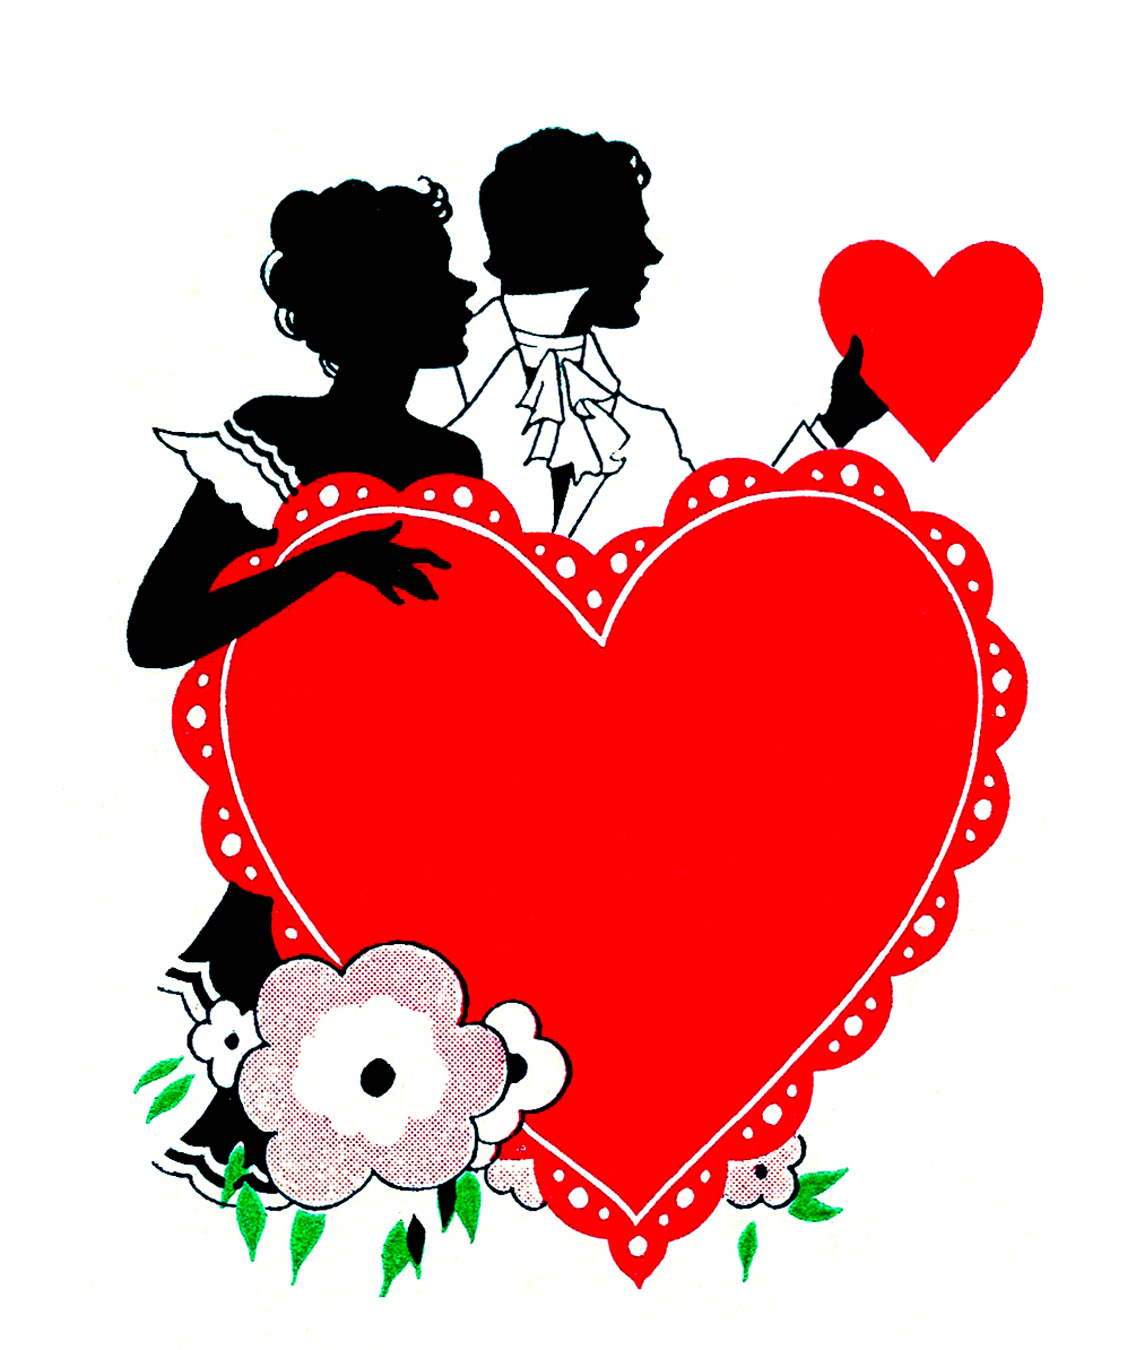 Vintage Valentine's Day Clip Art - Romantic Silhouettes - The ...